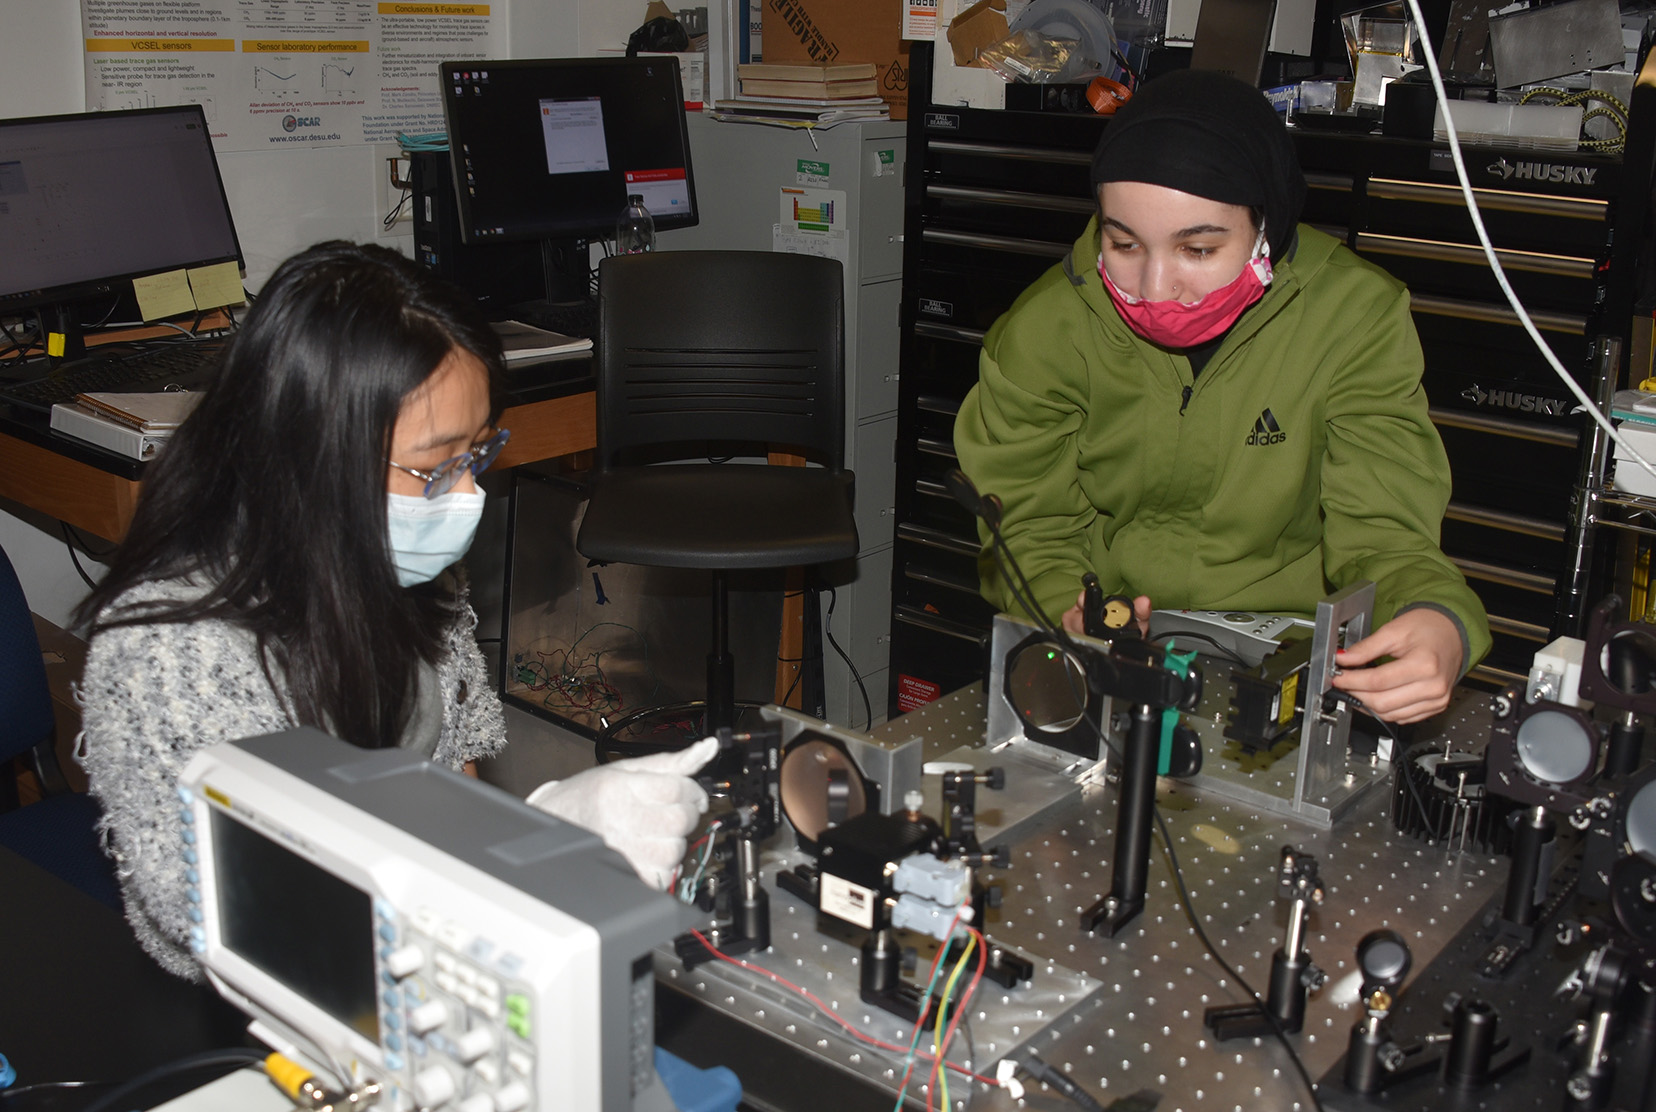 (L-r) Yue An, an optics graduate student from China, and Zayna Juracka, an engineering undergraduate and recent Early College High School graduate, are building a sensor that will measure air quality as part of an Air Quality Mapping summer program.